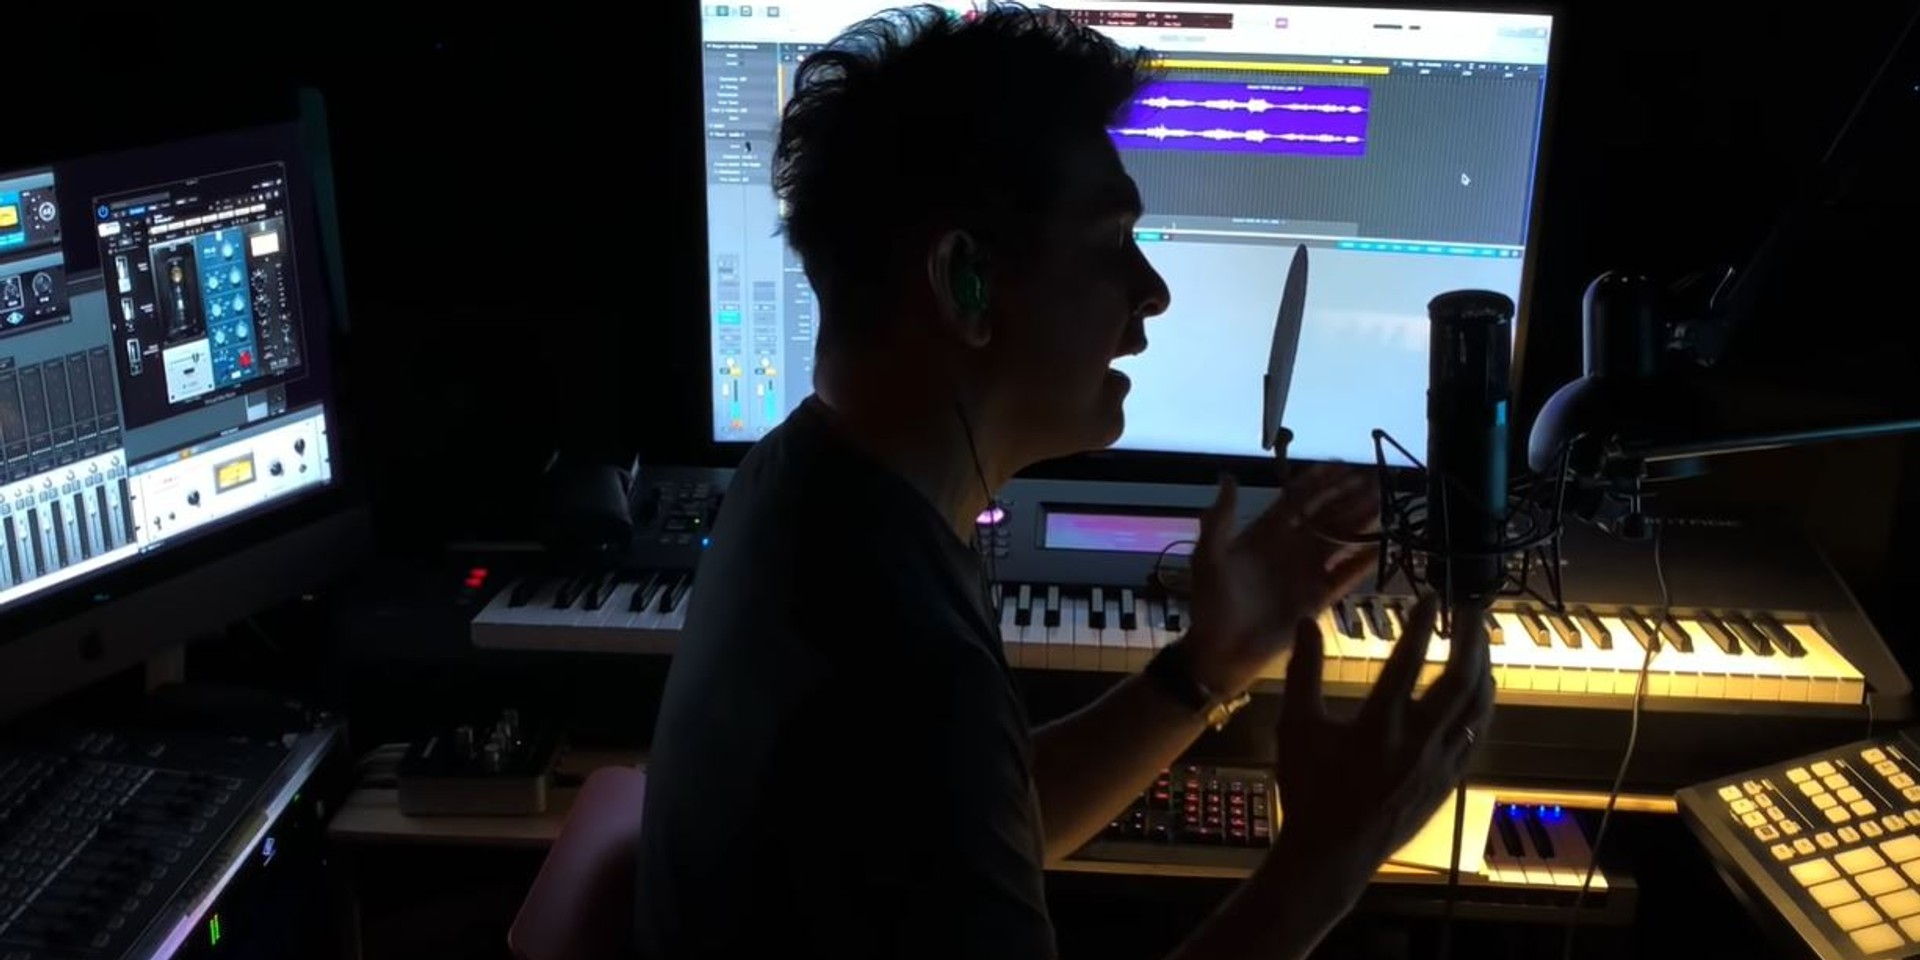 Gary Valenciano shares 'Take Me Out of the Dark' performance video from home studio – watch